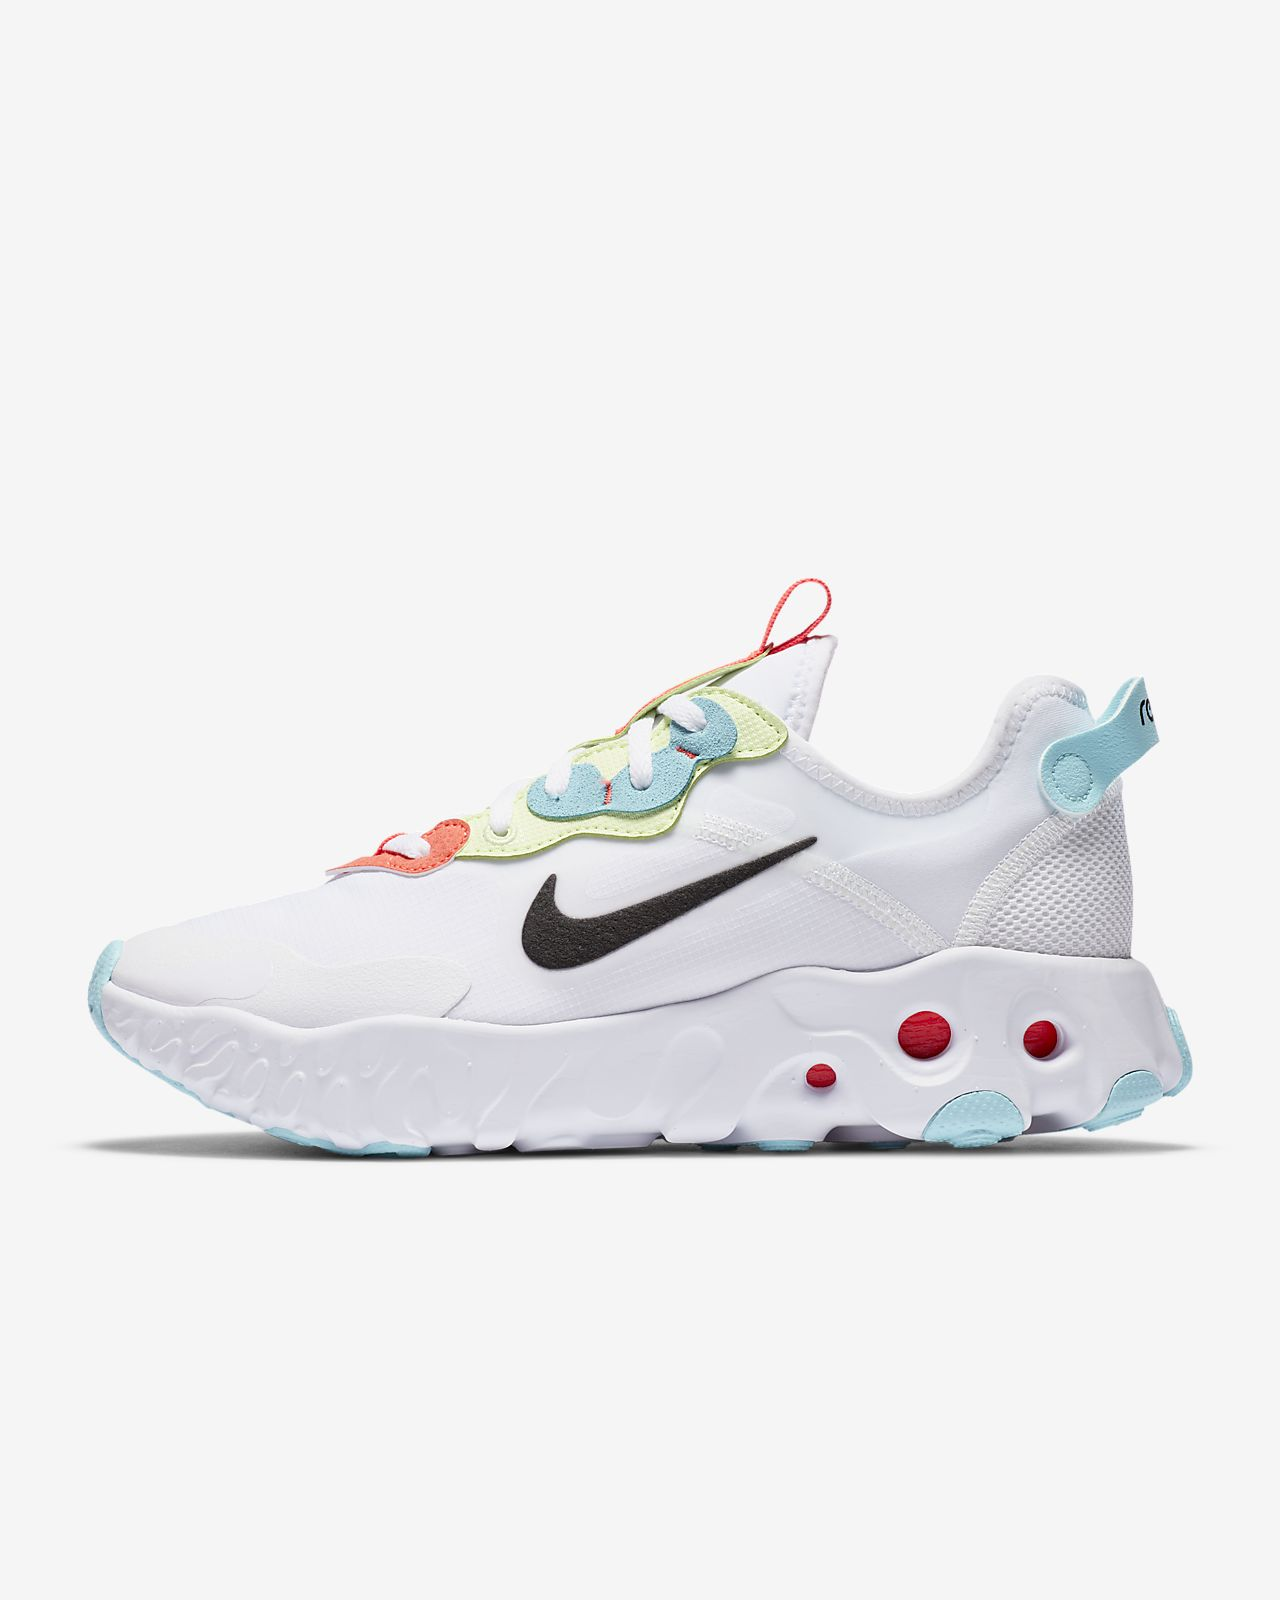 Nike React Art3mis Damenschuh